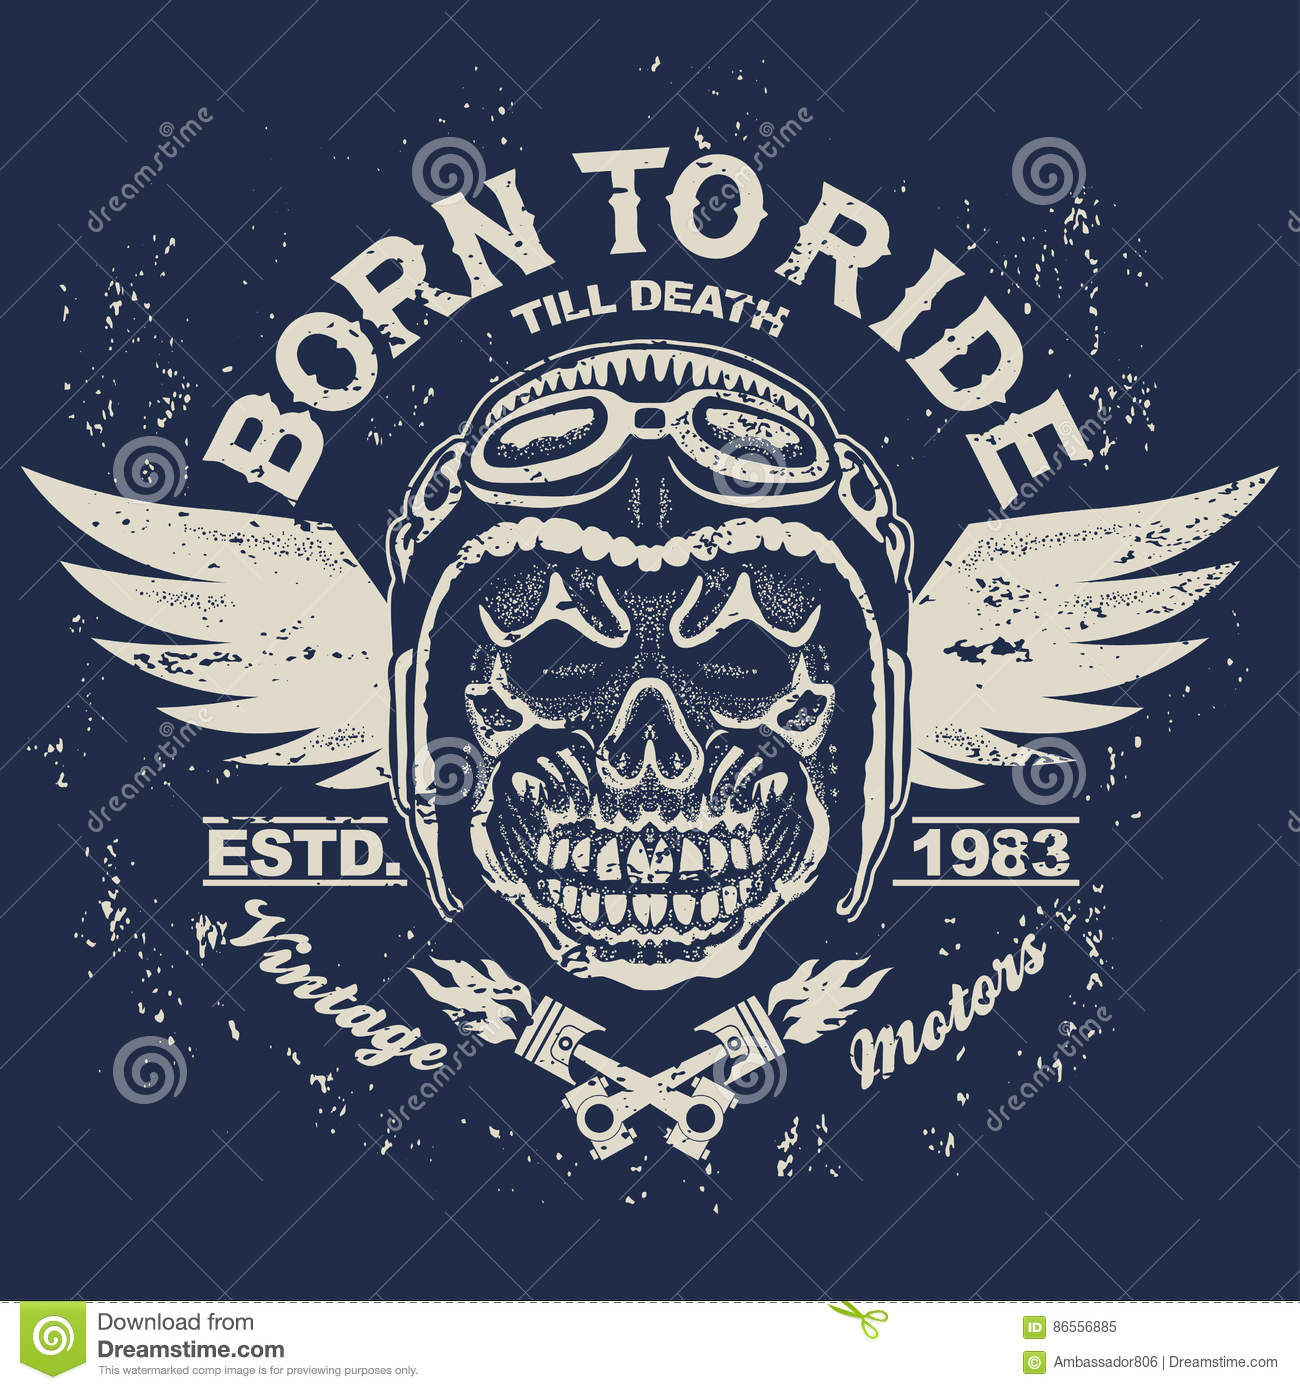 c4b4cf6fee9 Motorcycle t-shirt graphics. Skull rider in helmet with wings. Born to ride  Racer emblem. Biker vintage apparel print. Vector